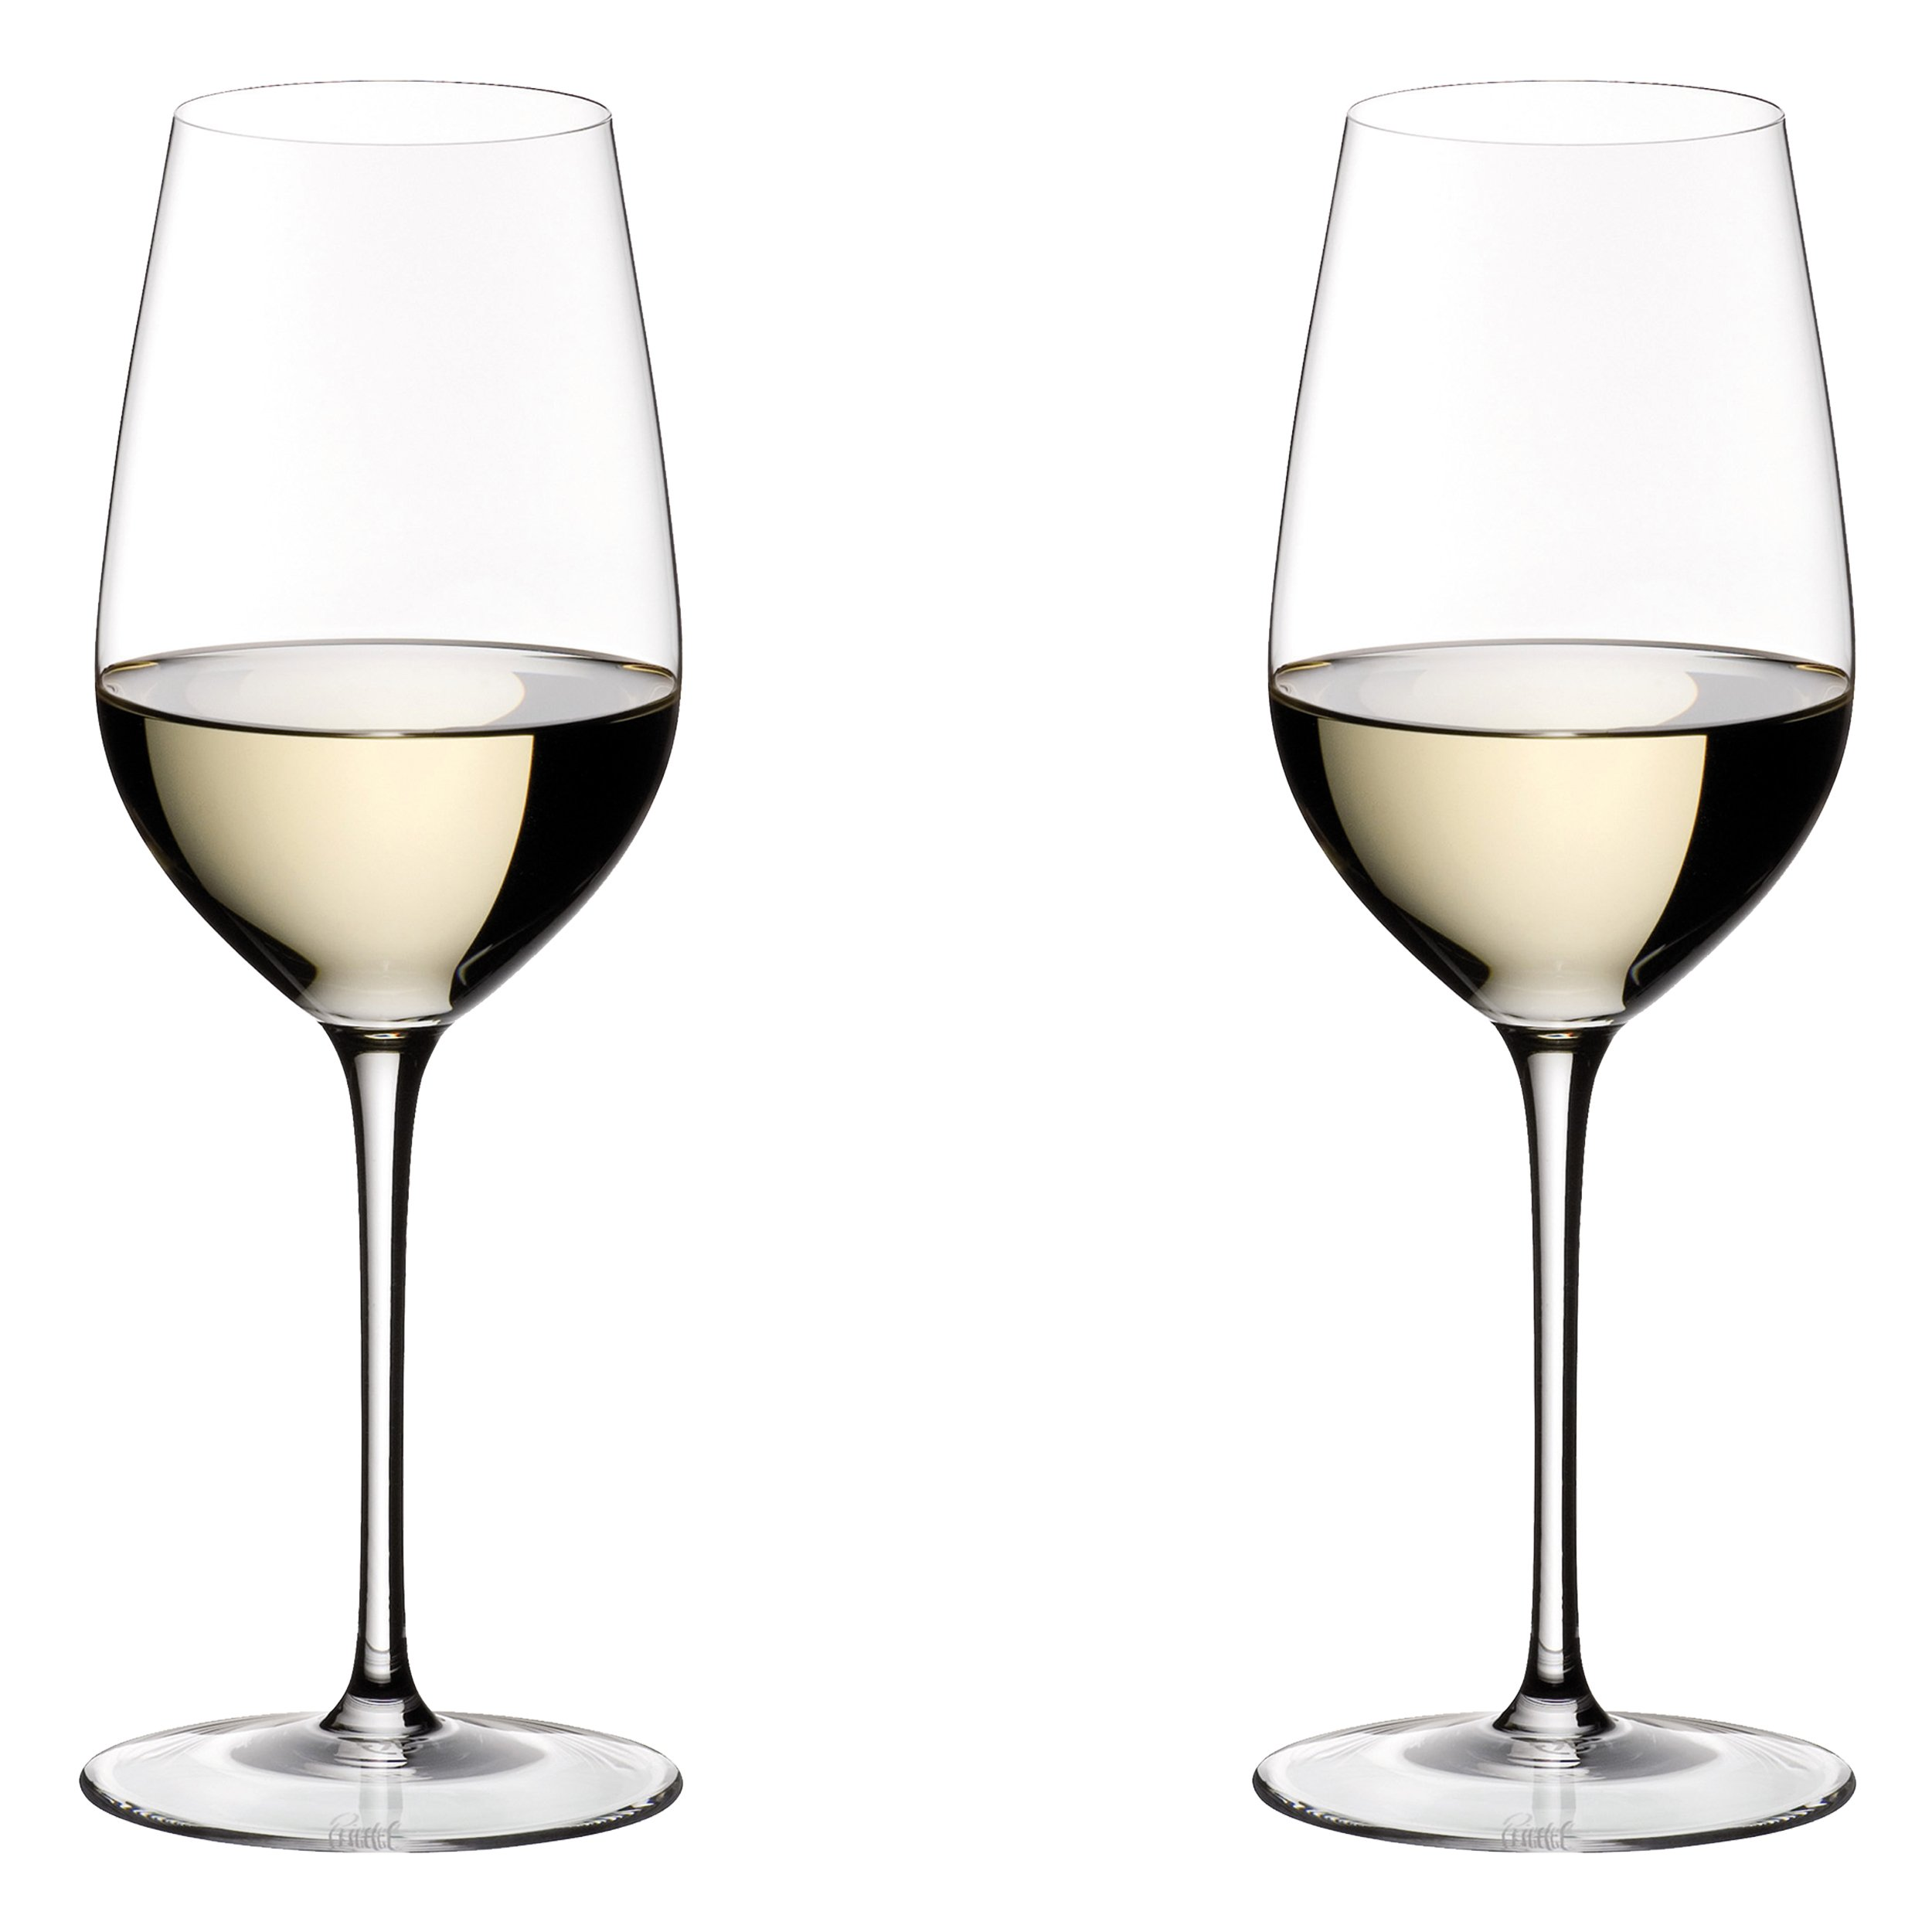 Riedel Sommeliers Riesling Grand Cru/Zinfandel Wine Glass, Set of 2